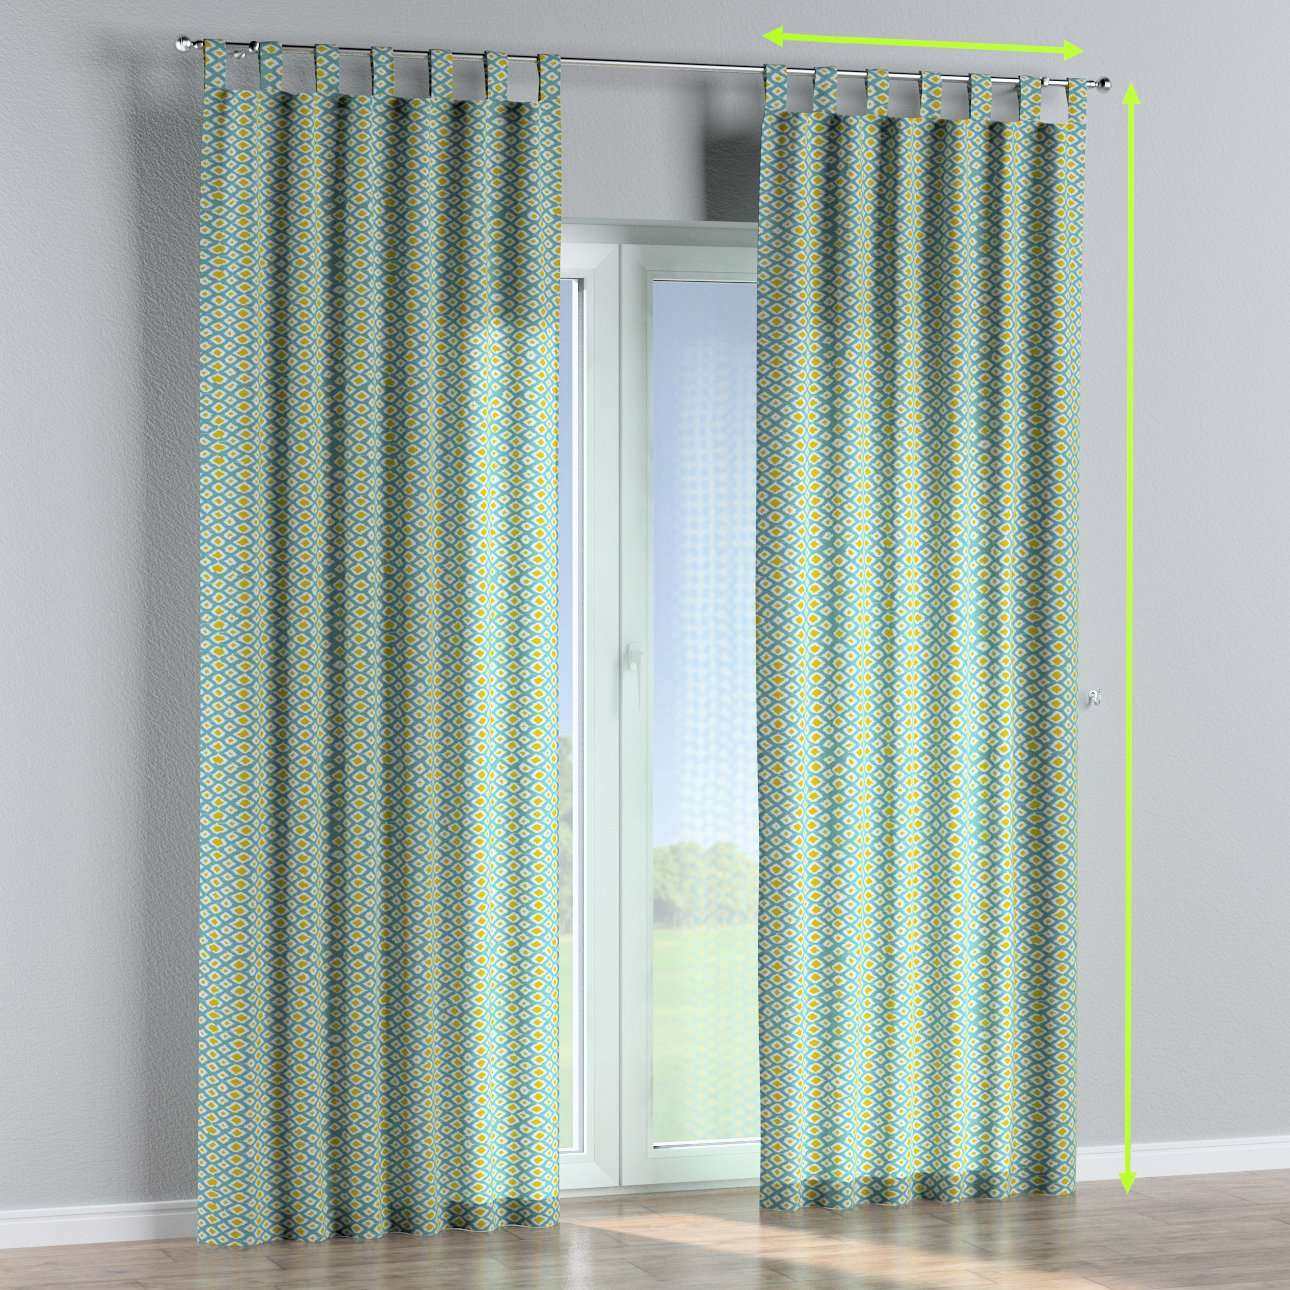 Tab top lined curtains in collection Comics/Geometrical, fabric: 141-20